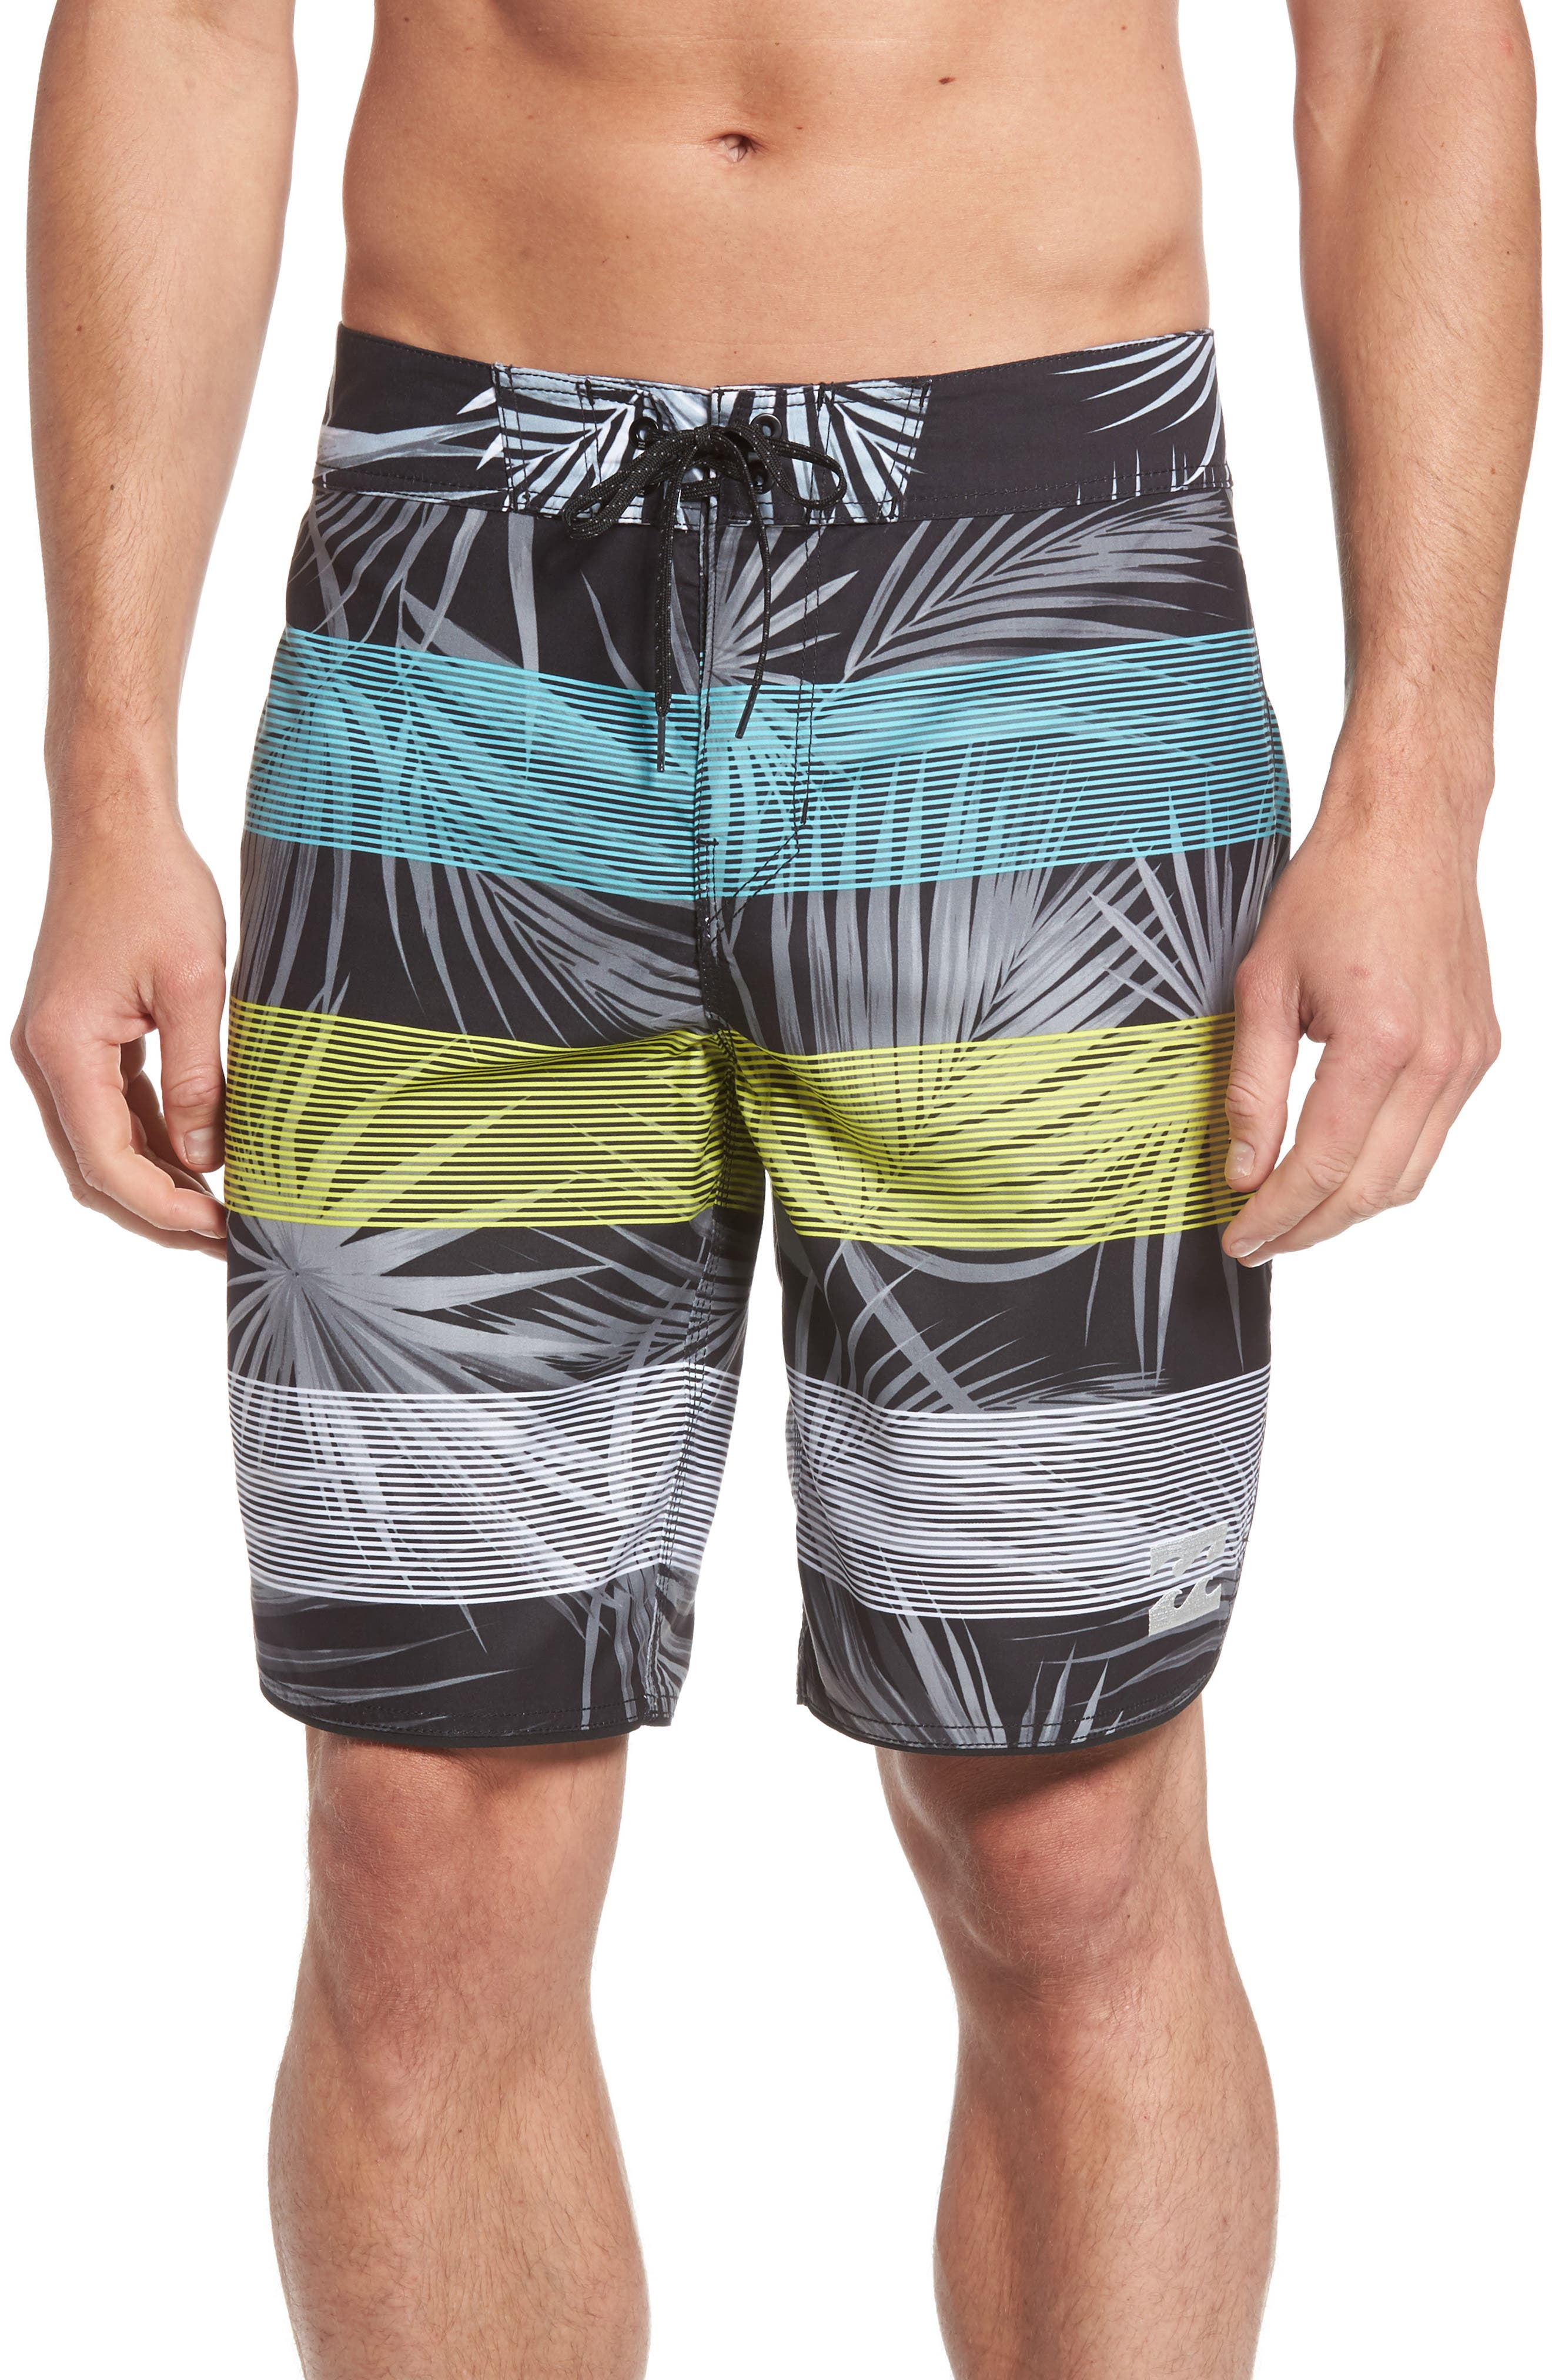 73 OG Stripe Board Shorts,                             Main thumbnail 1, color,                             001